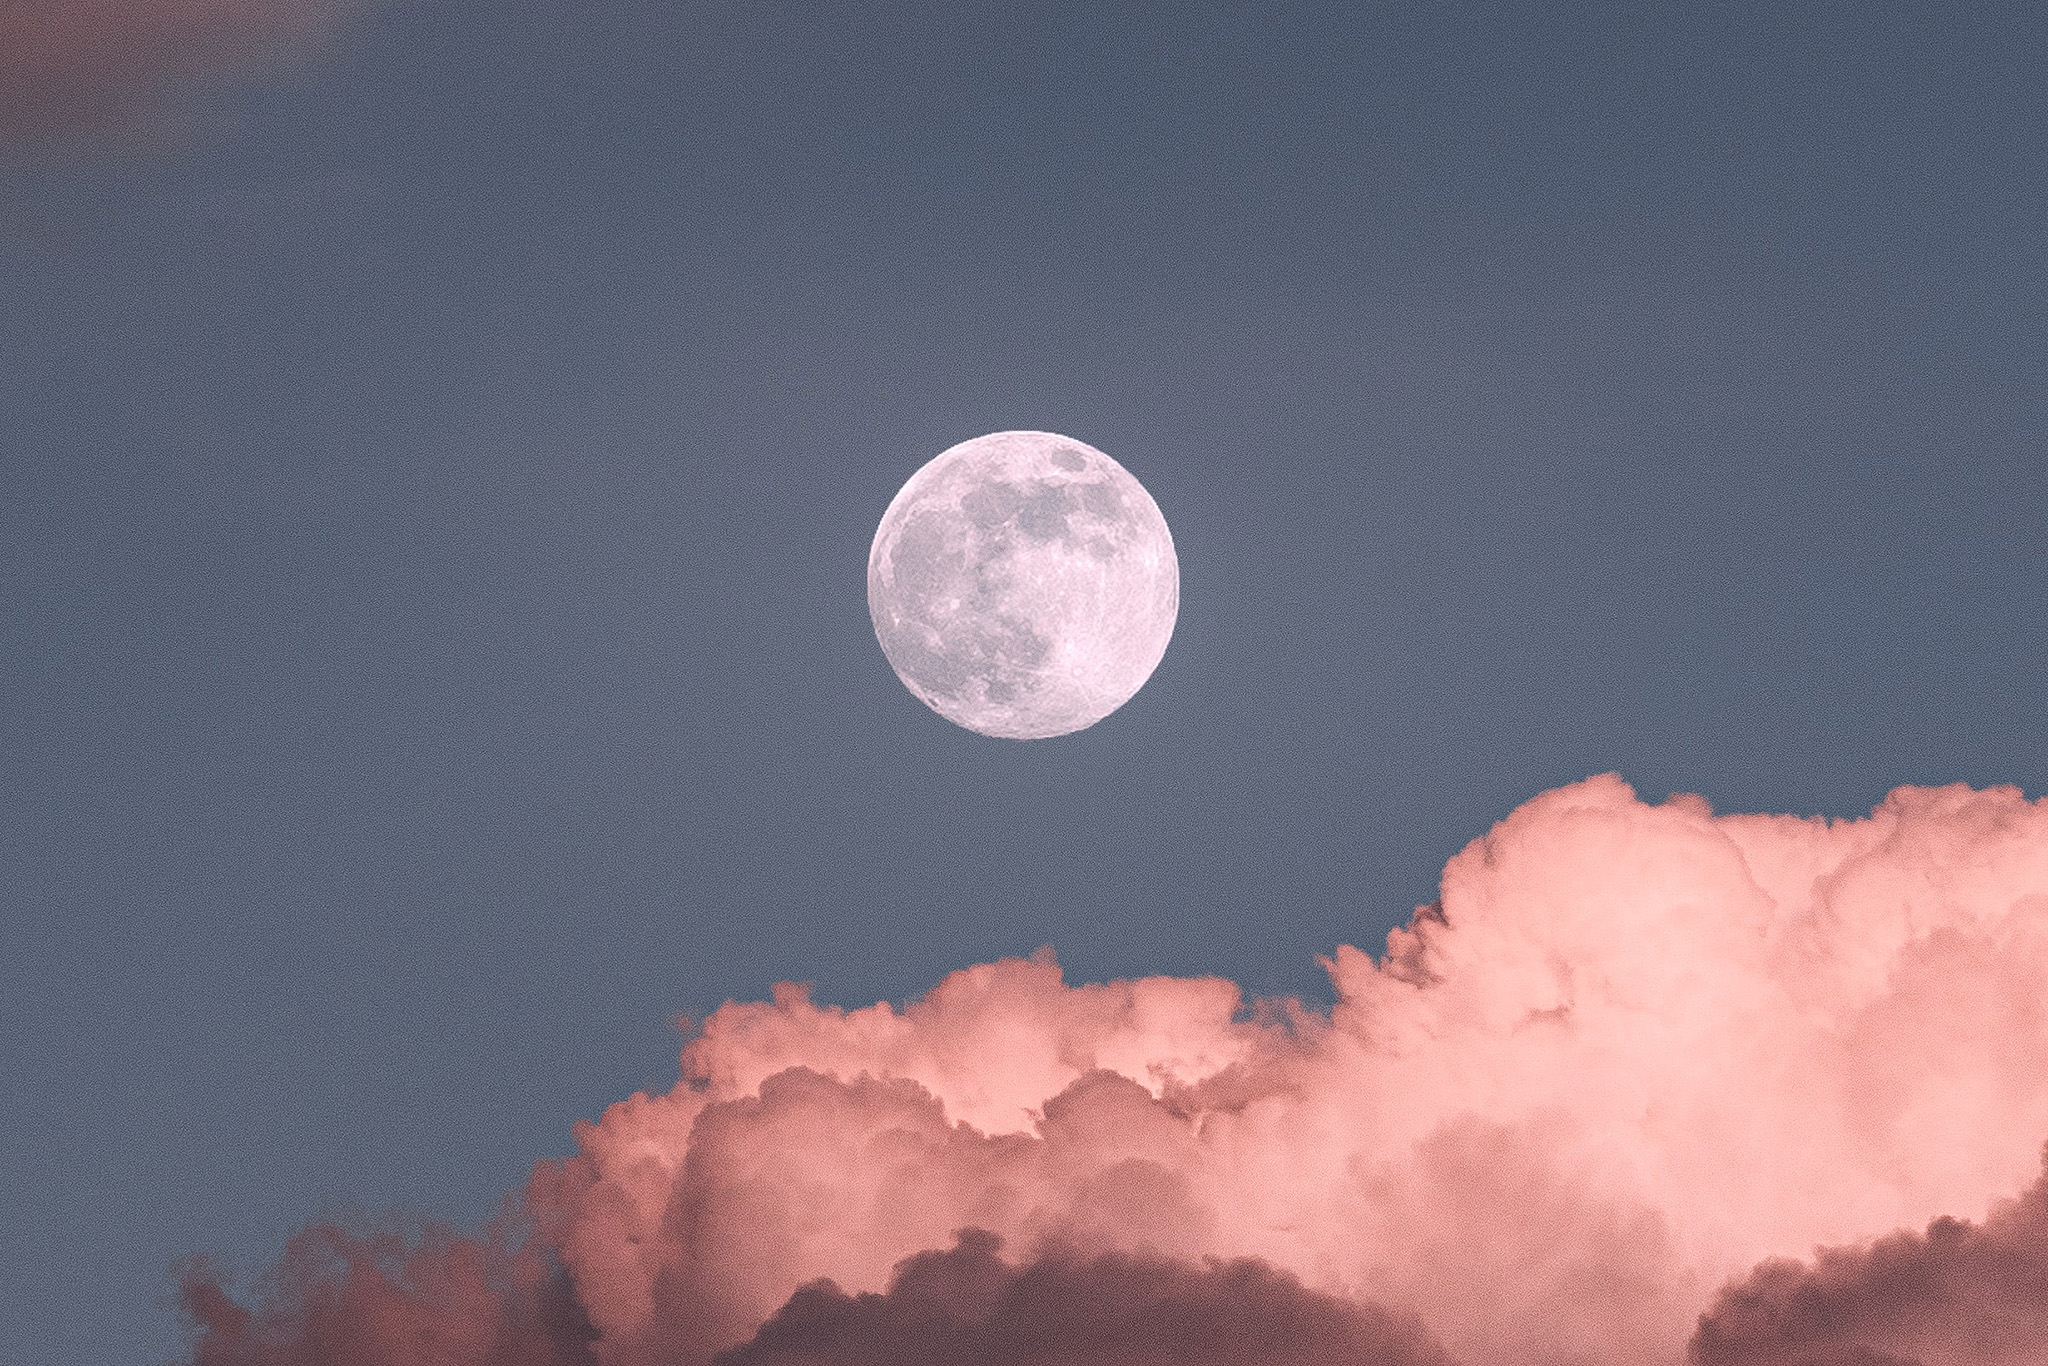 Full moon in the gray sky among pink clouds, time to perform a full moon ritual to raise power